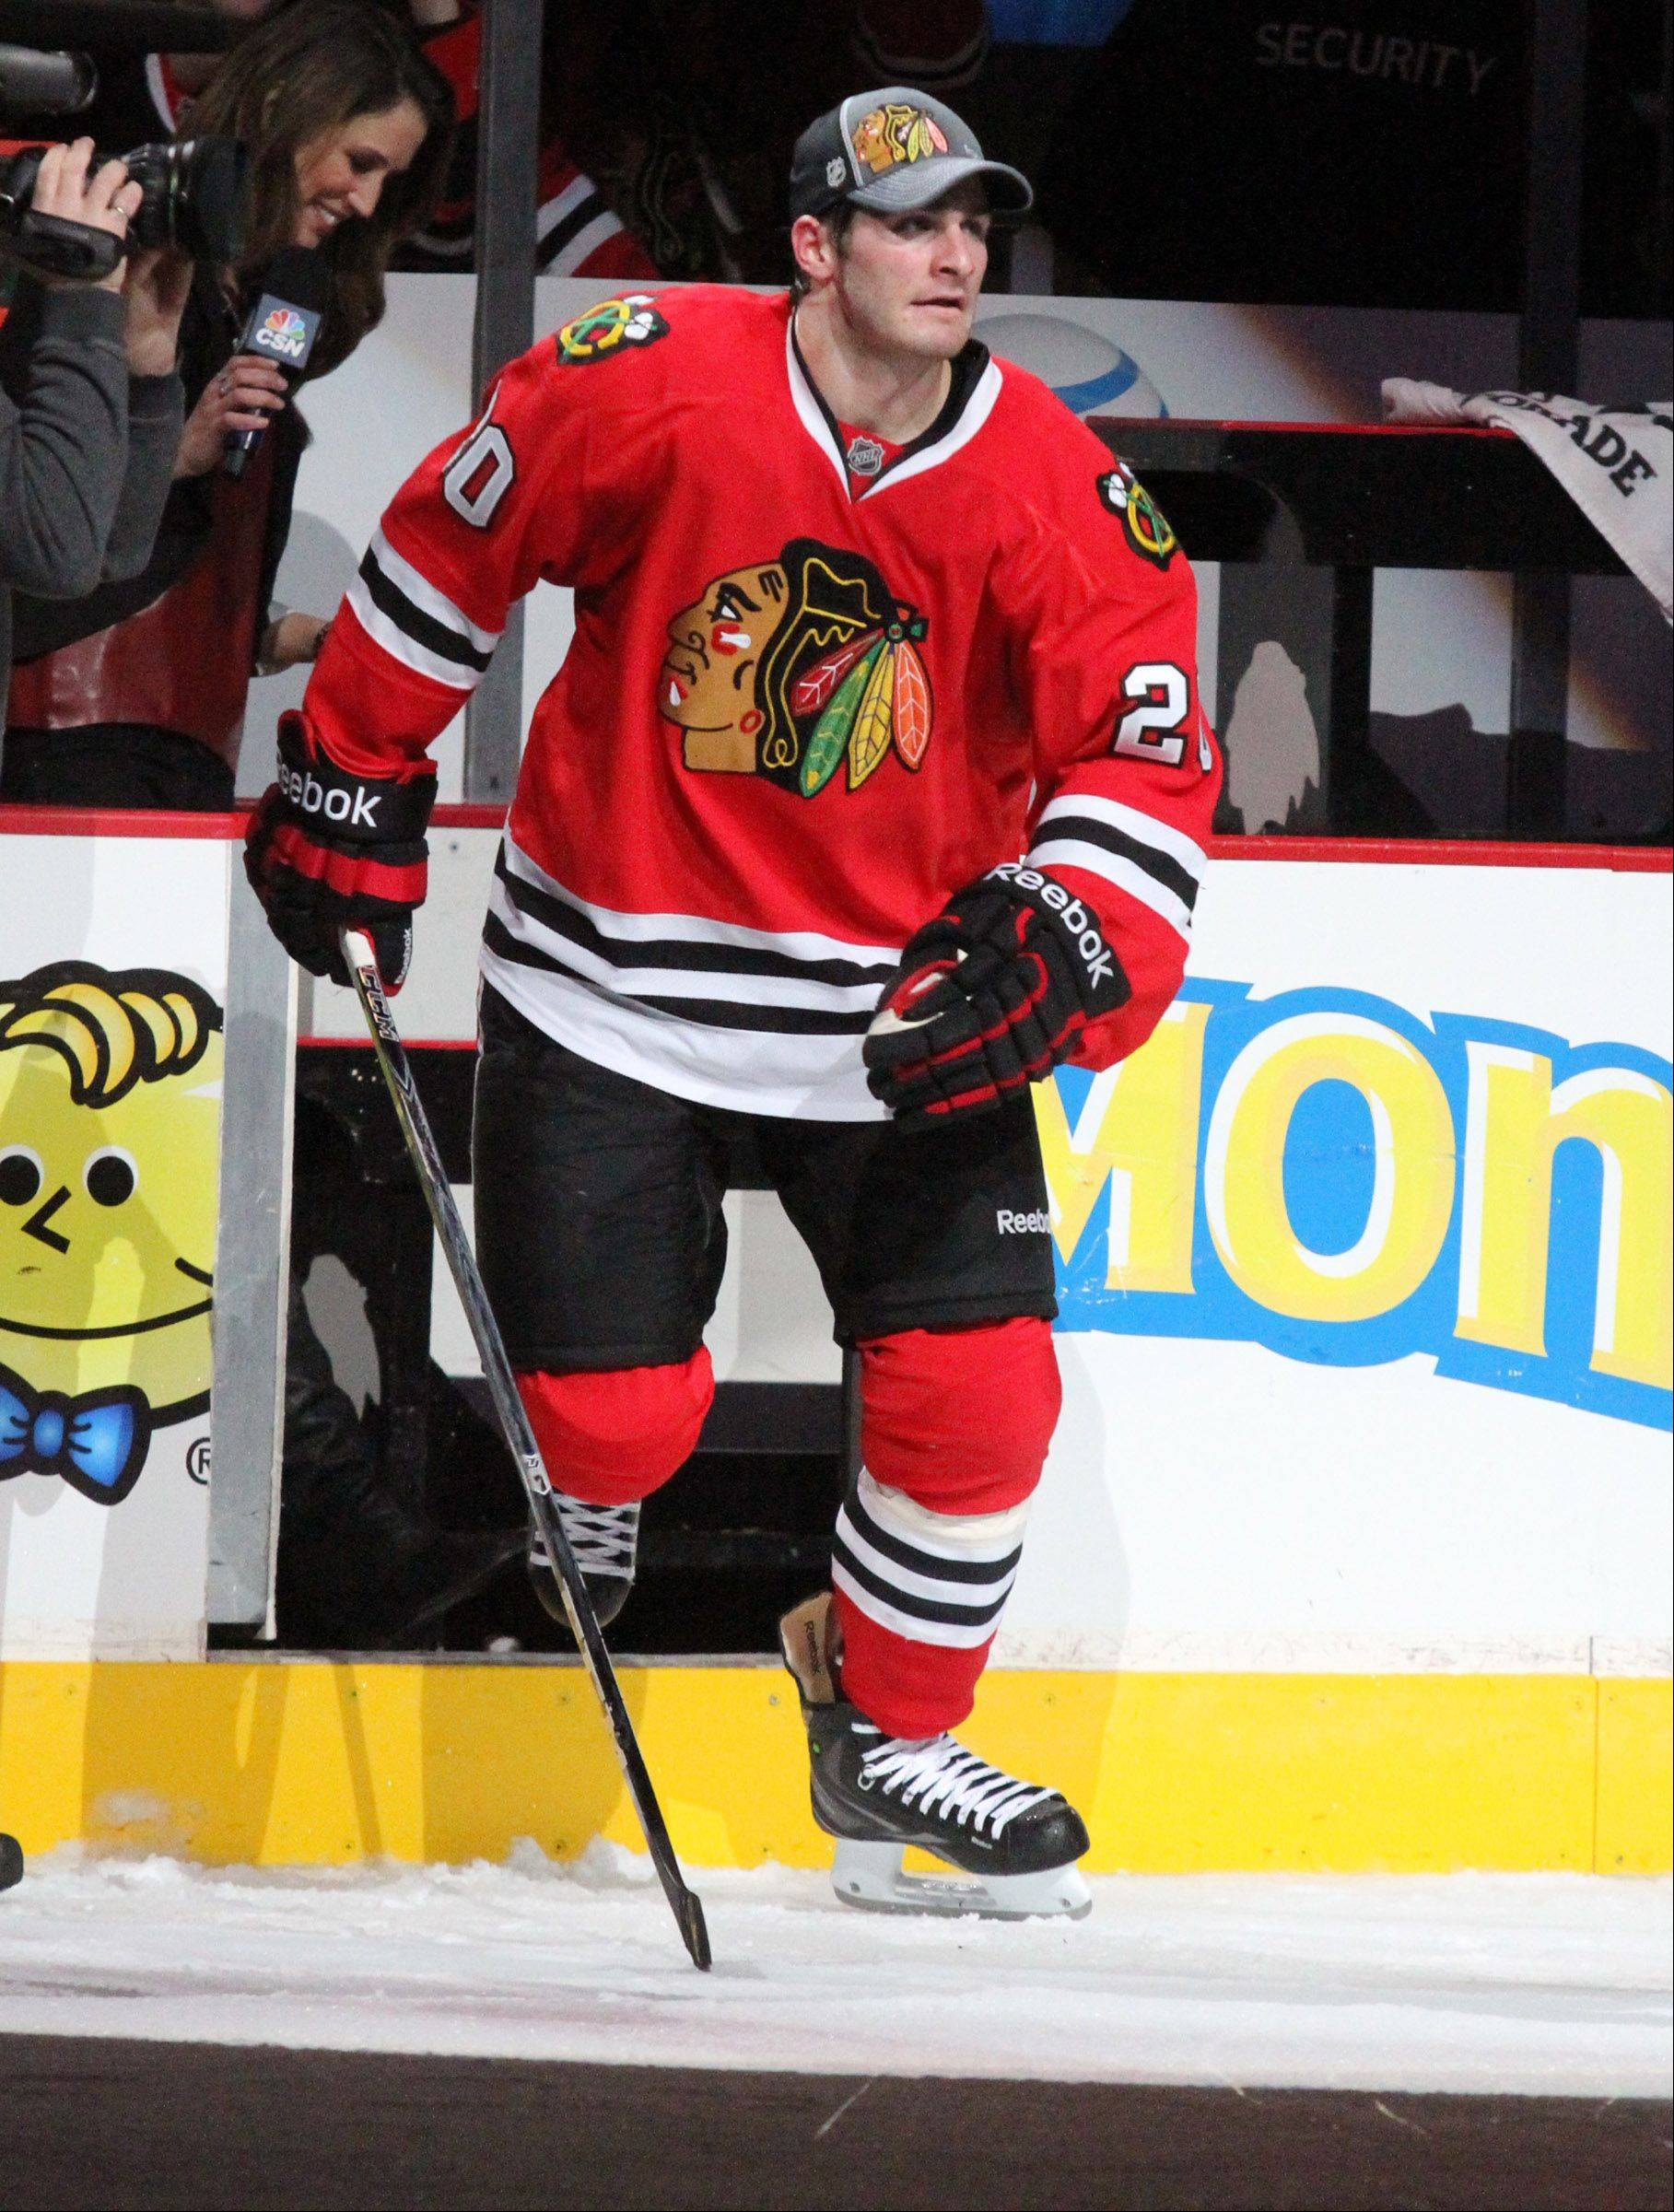 Saad's maturity growing fast with Hawks teammates